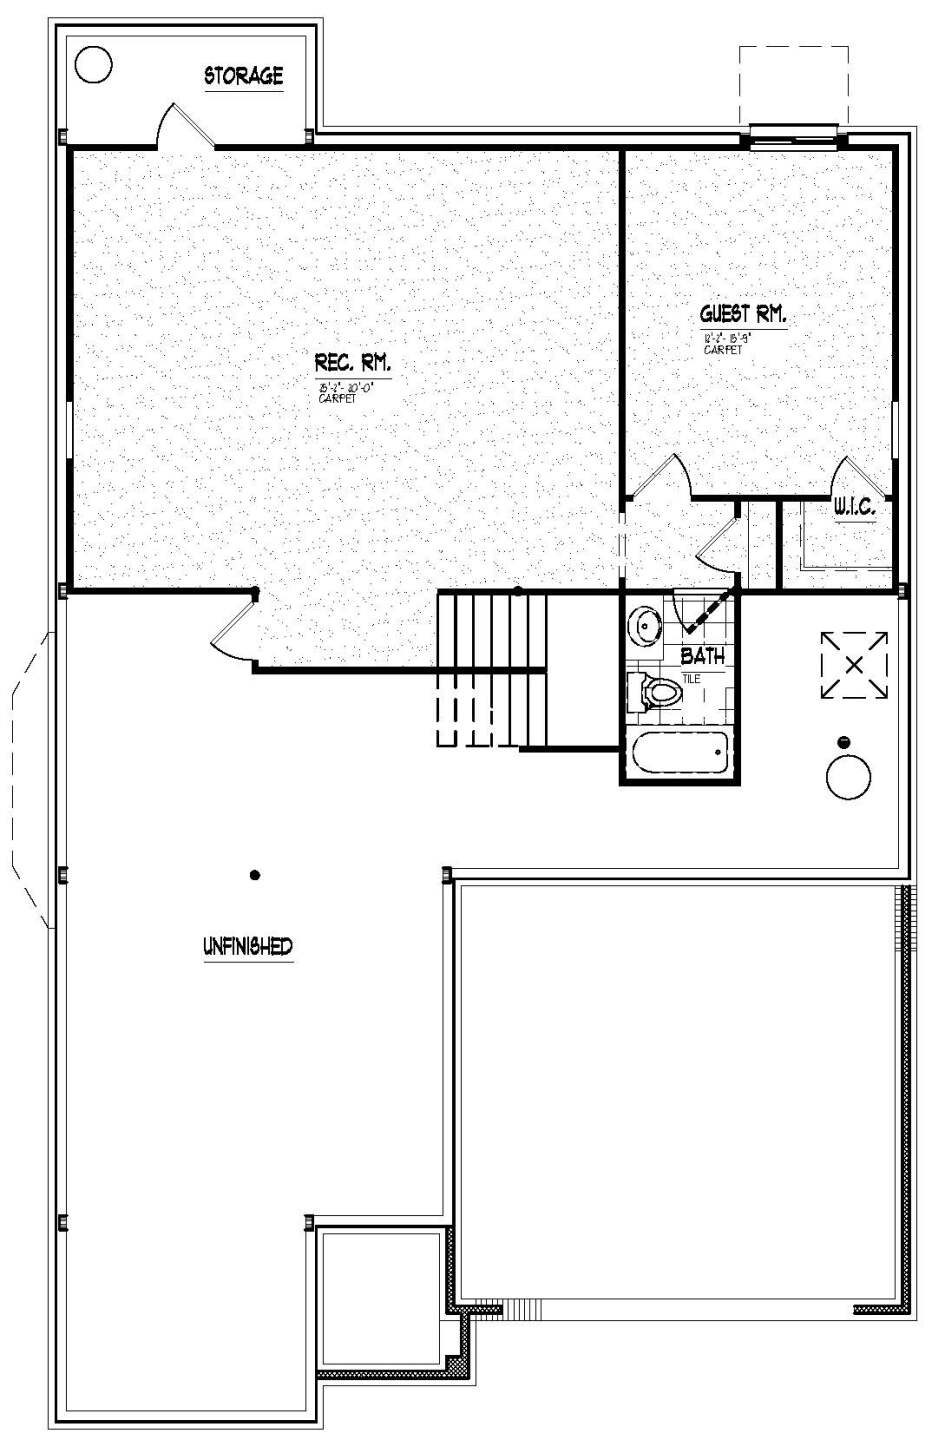 Raleigh Basement Opt 2 Plan.jpg